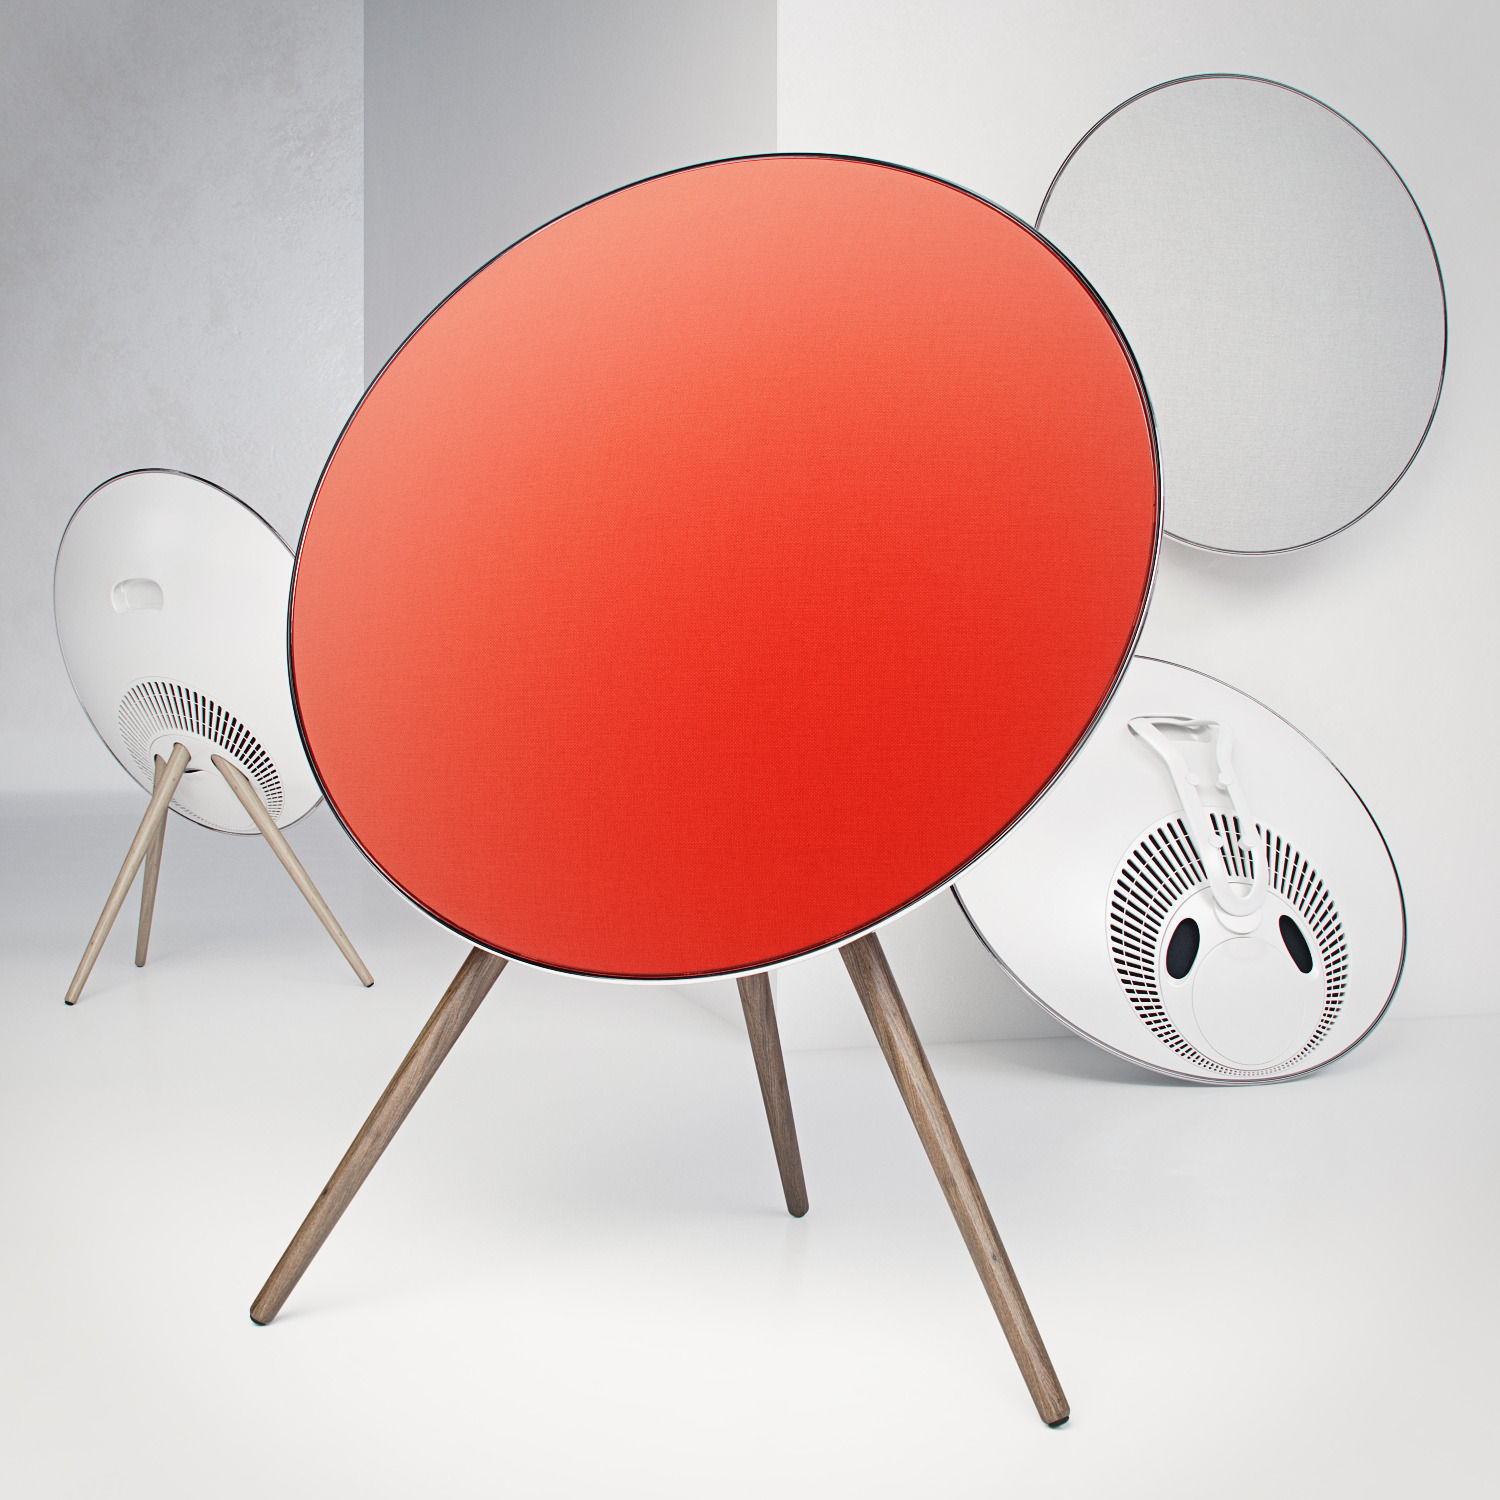 e1e35f2947b BeoPlay A9 3D model | CGTrader